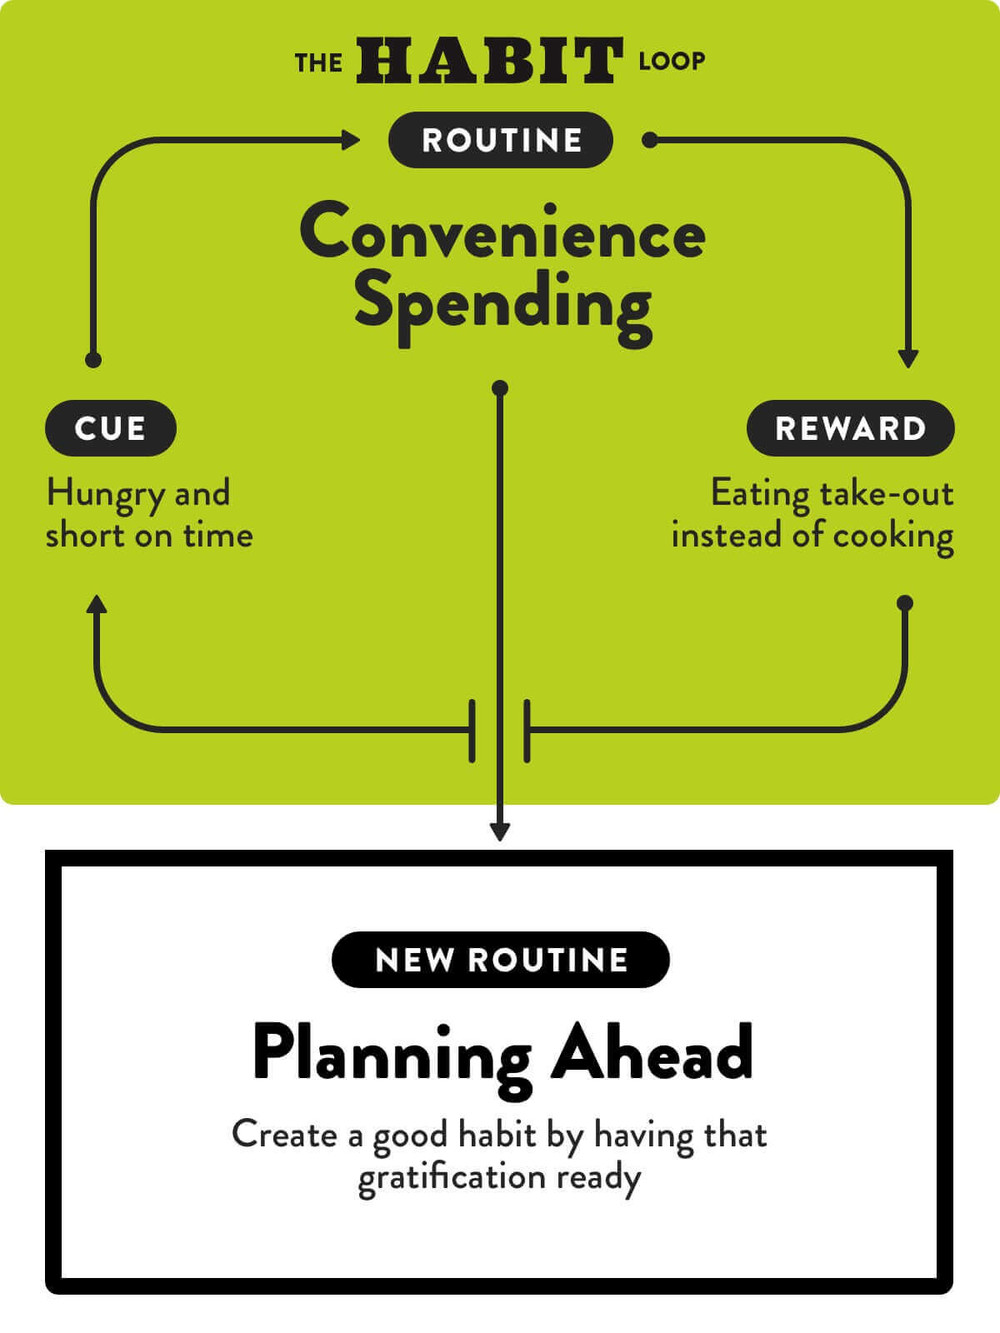 Convience overspending habit loop